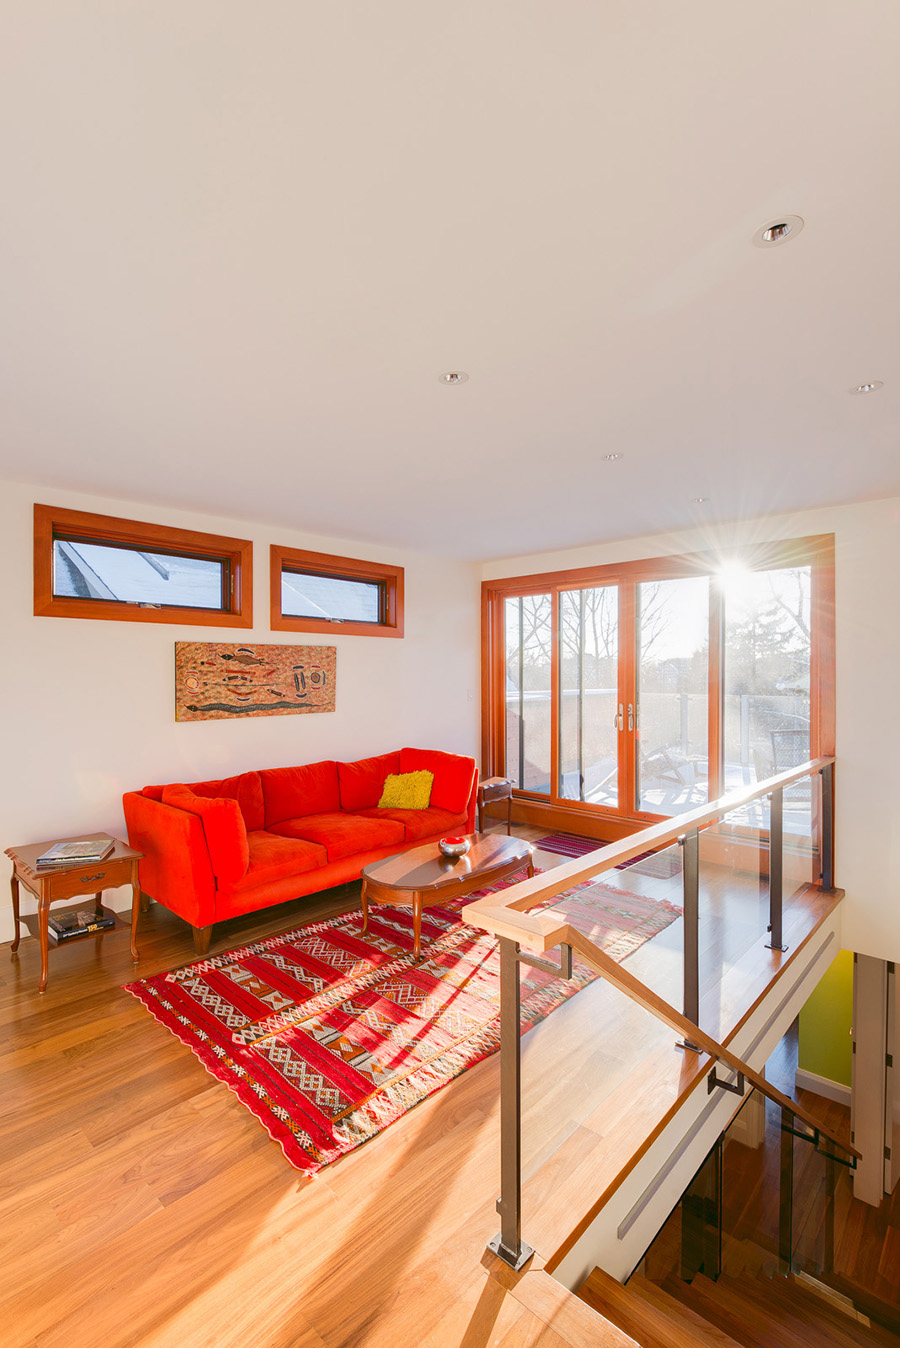 Siting room with open stair and large sliding doors to access rooftop balcony